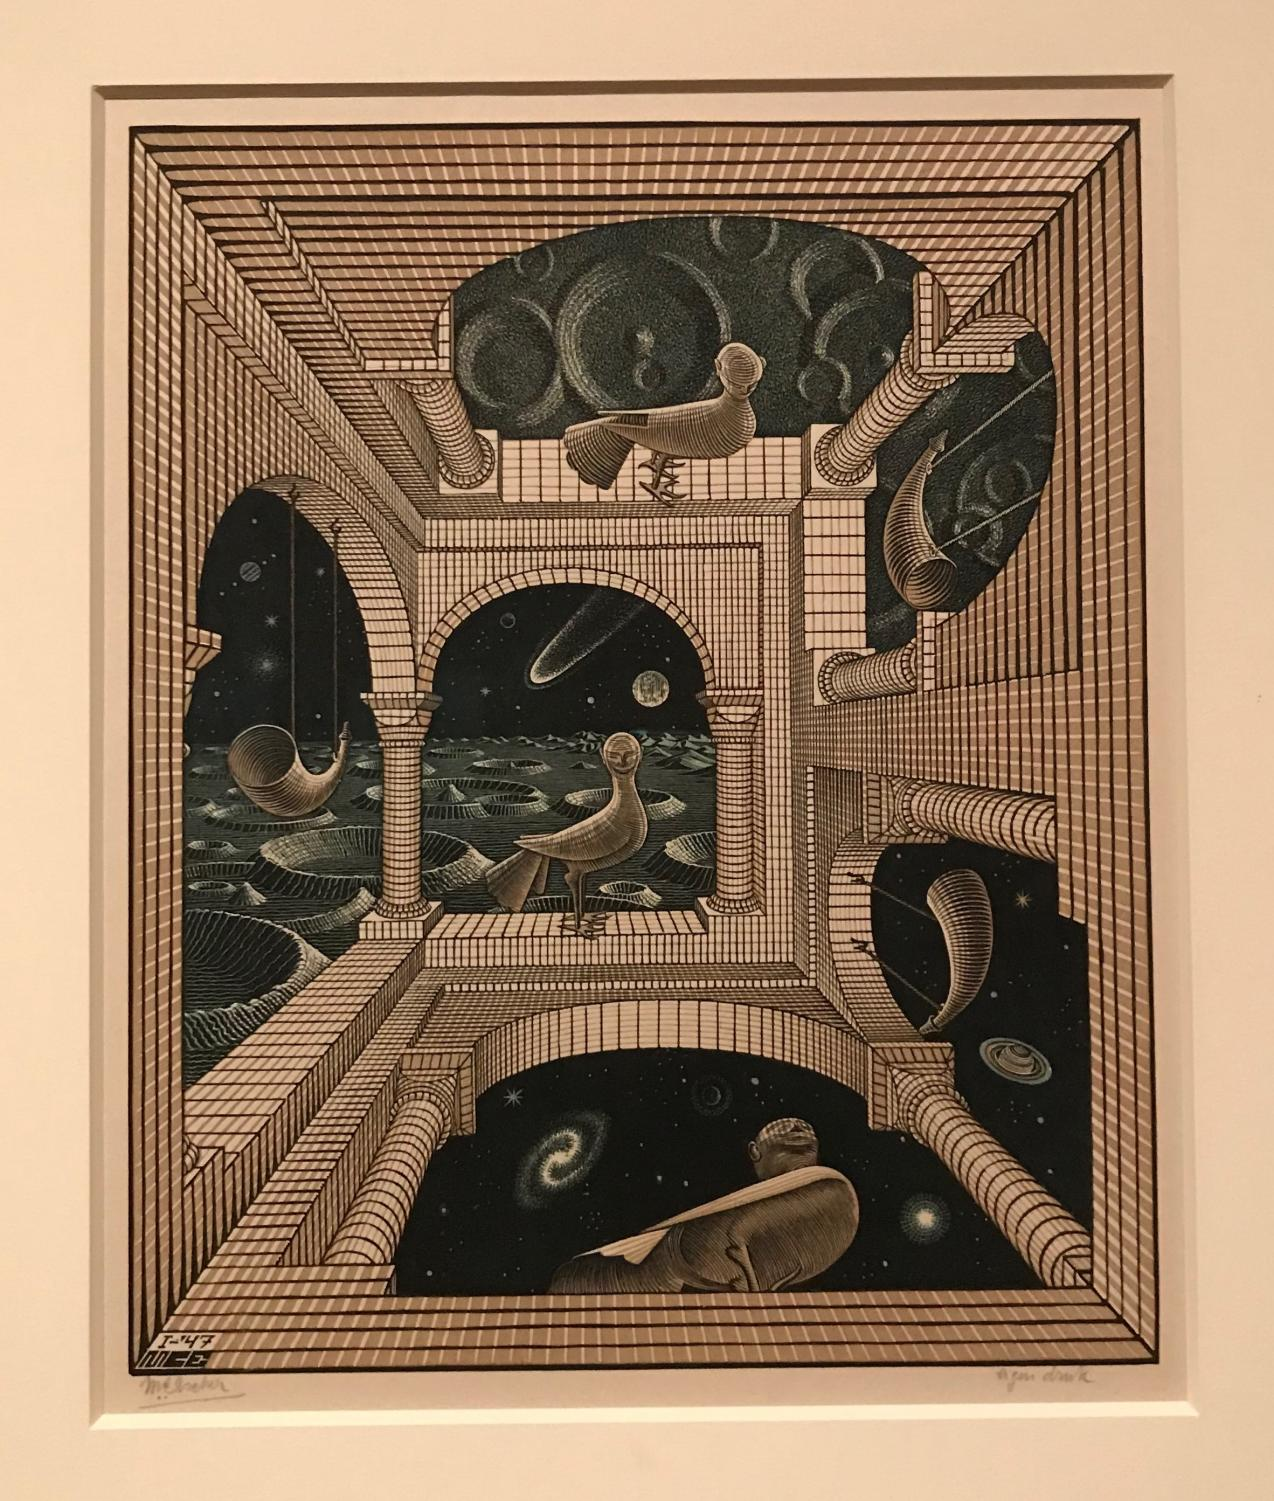 In his artwork, Escher plays with distortion to defy dimensions.